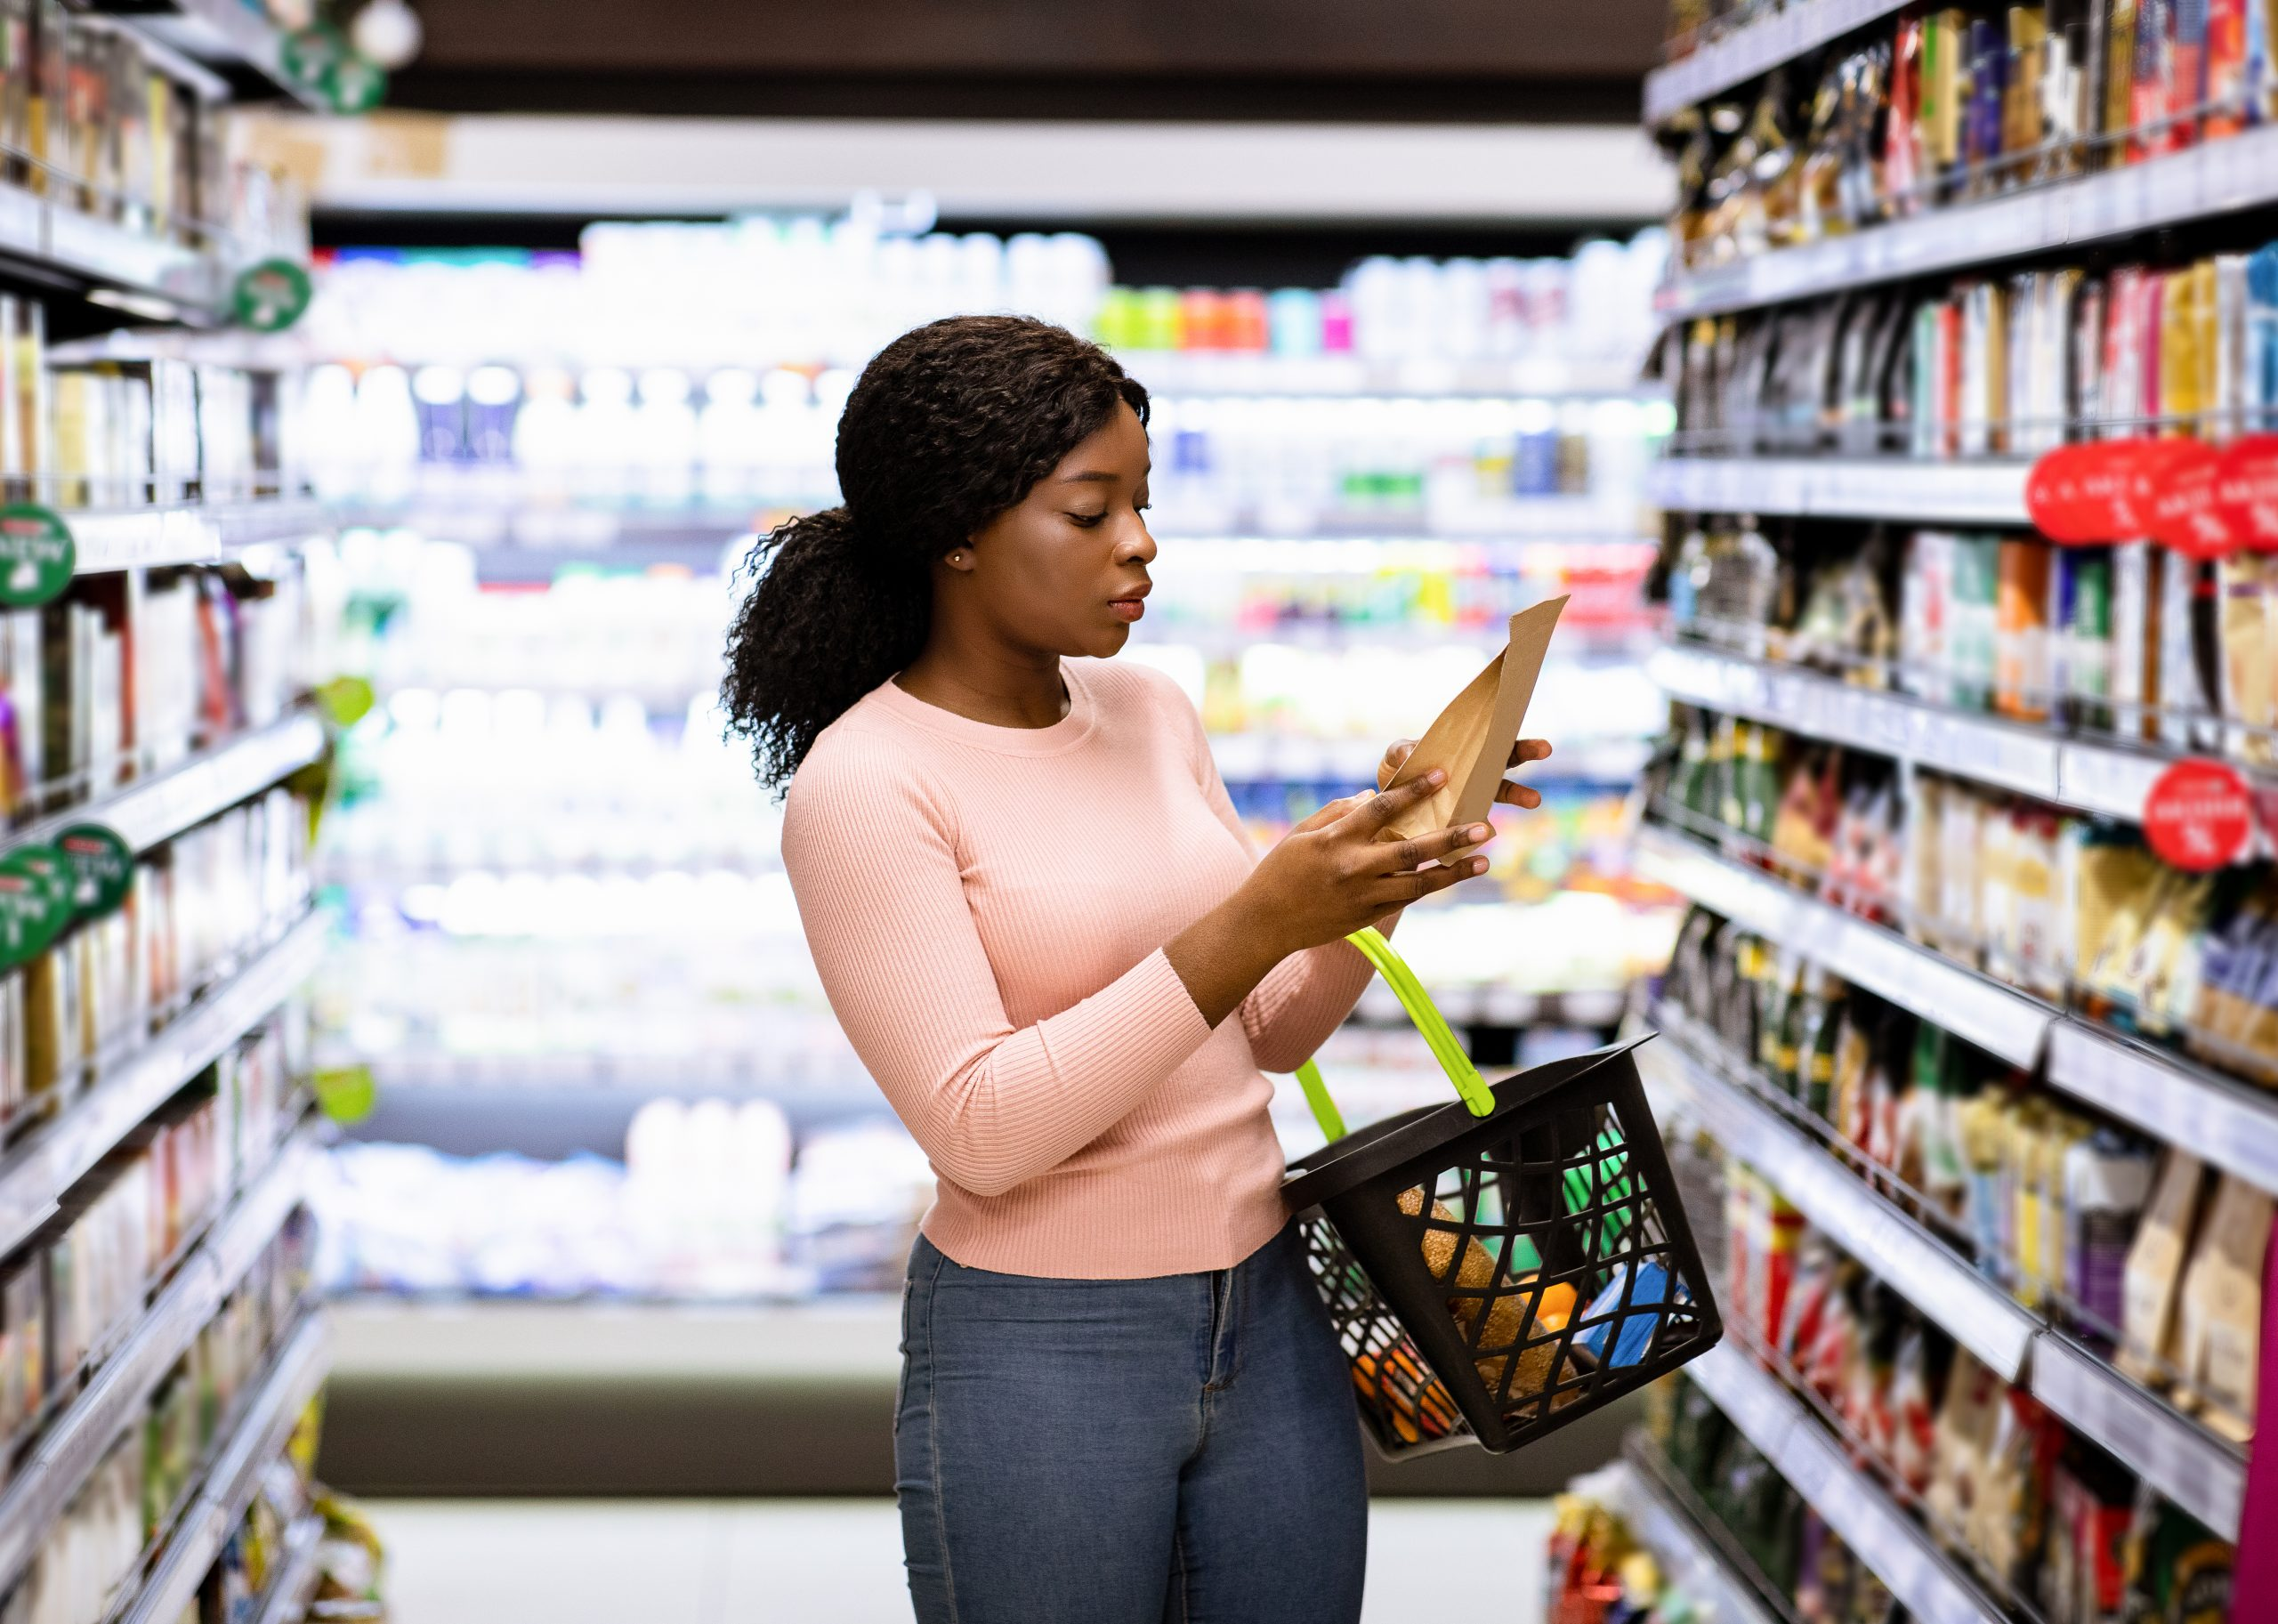 A women grocery shopping and looking at the label on a package of food in her hand